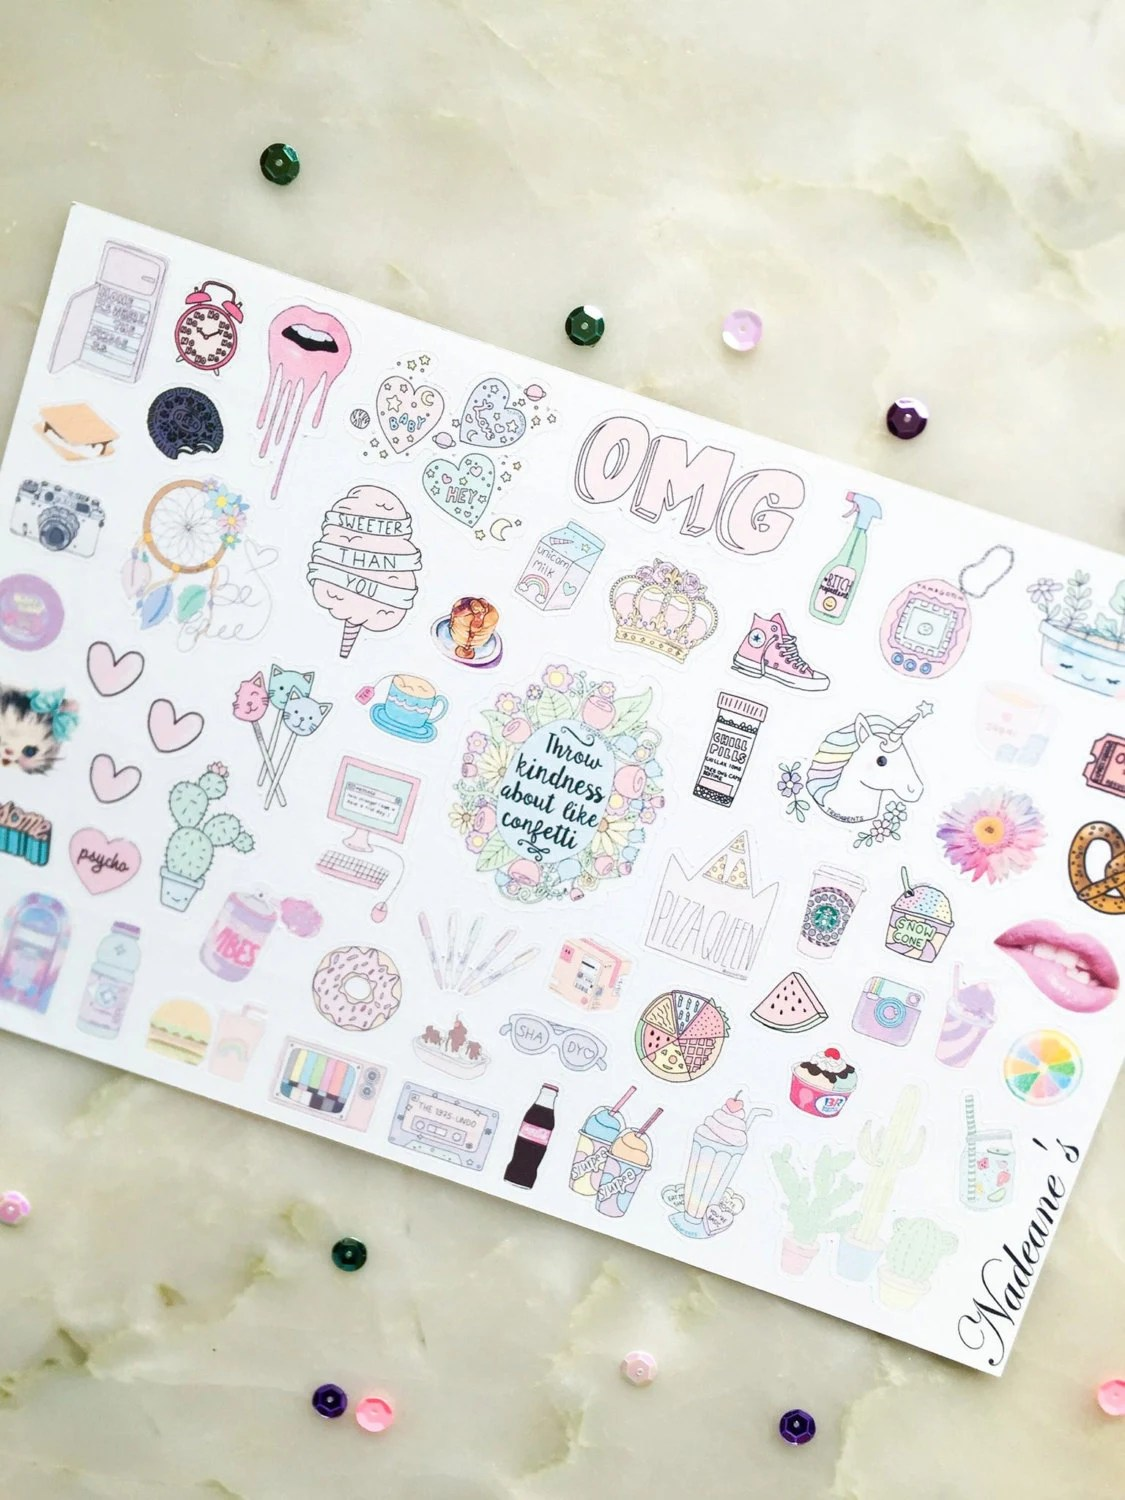 Tumblr Sticker Pastel Kawaii Pastel Stickers Tumblr Stickers Planner By Nadeanes